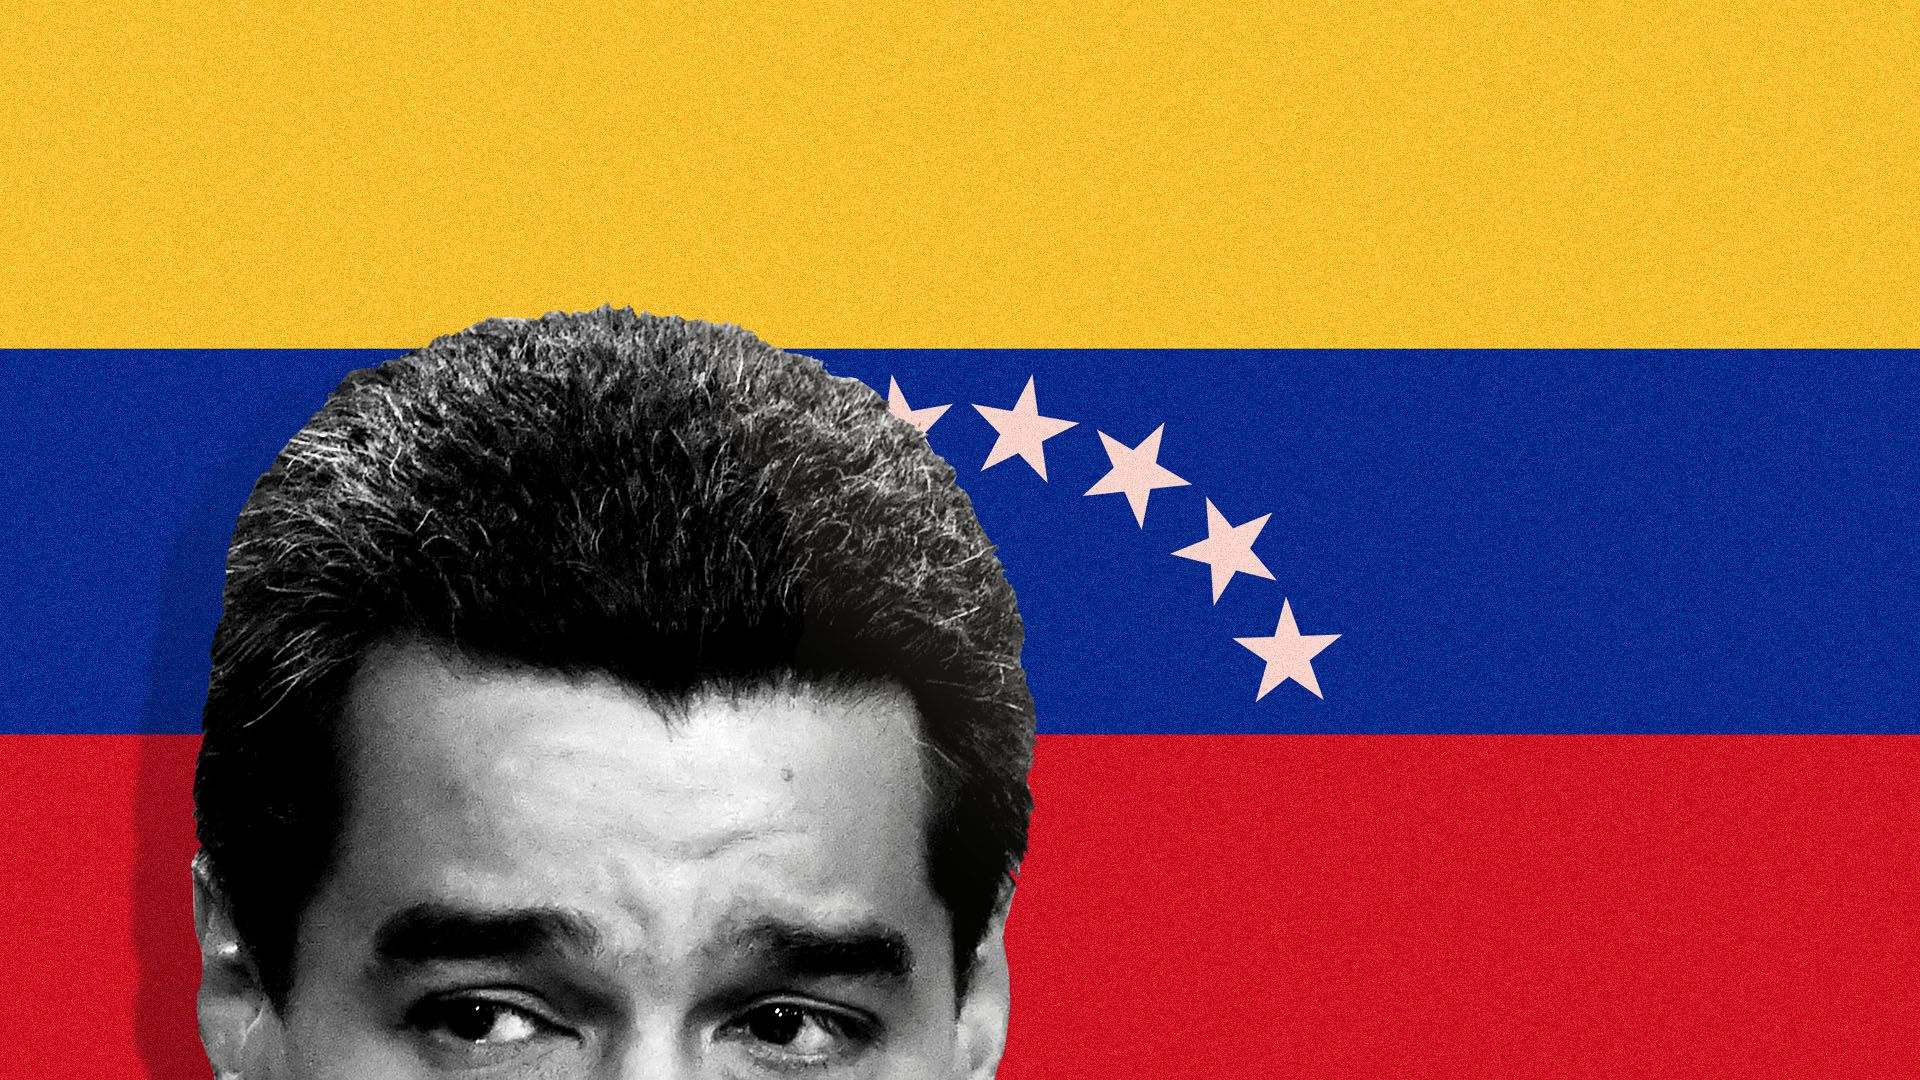 Illustration of President Venezuelan President Nicolas Maduro over Venezuelan flag